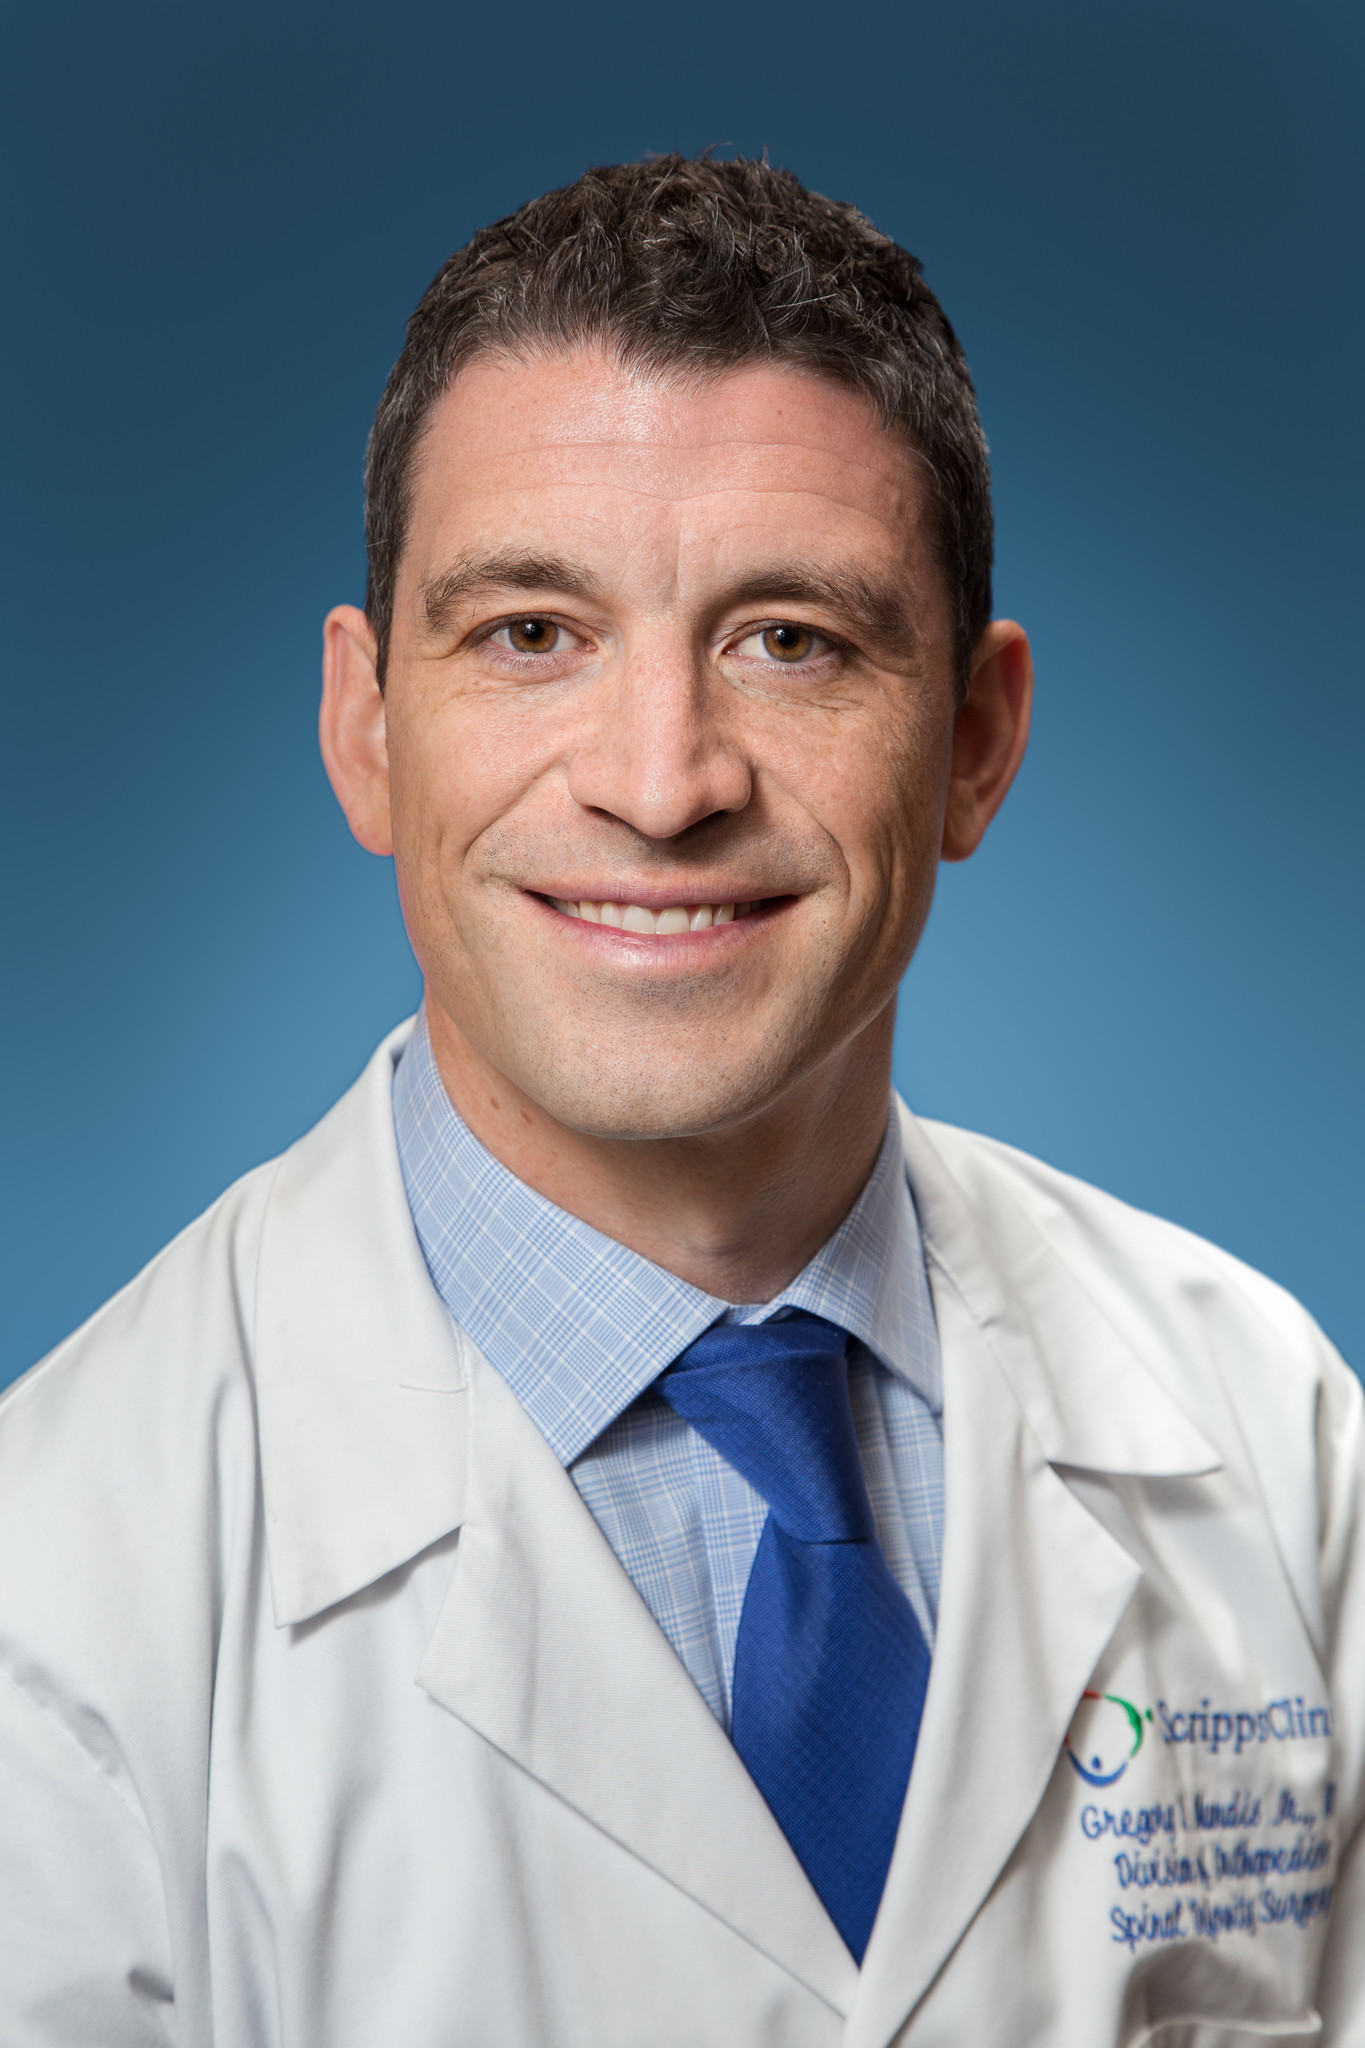 Dr. Gregory Mundis